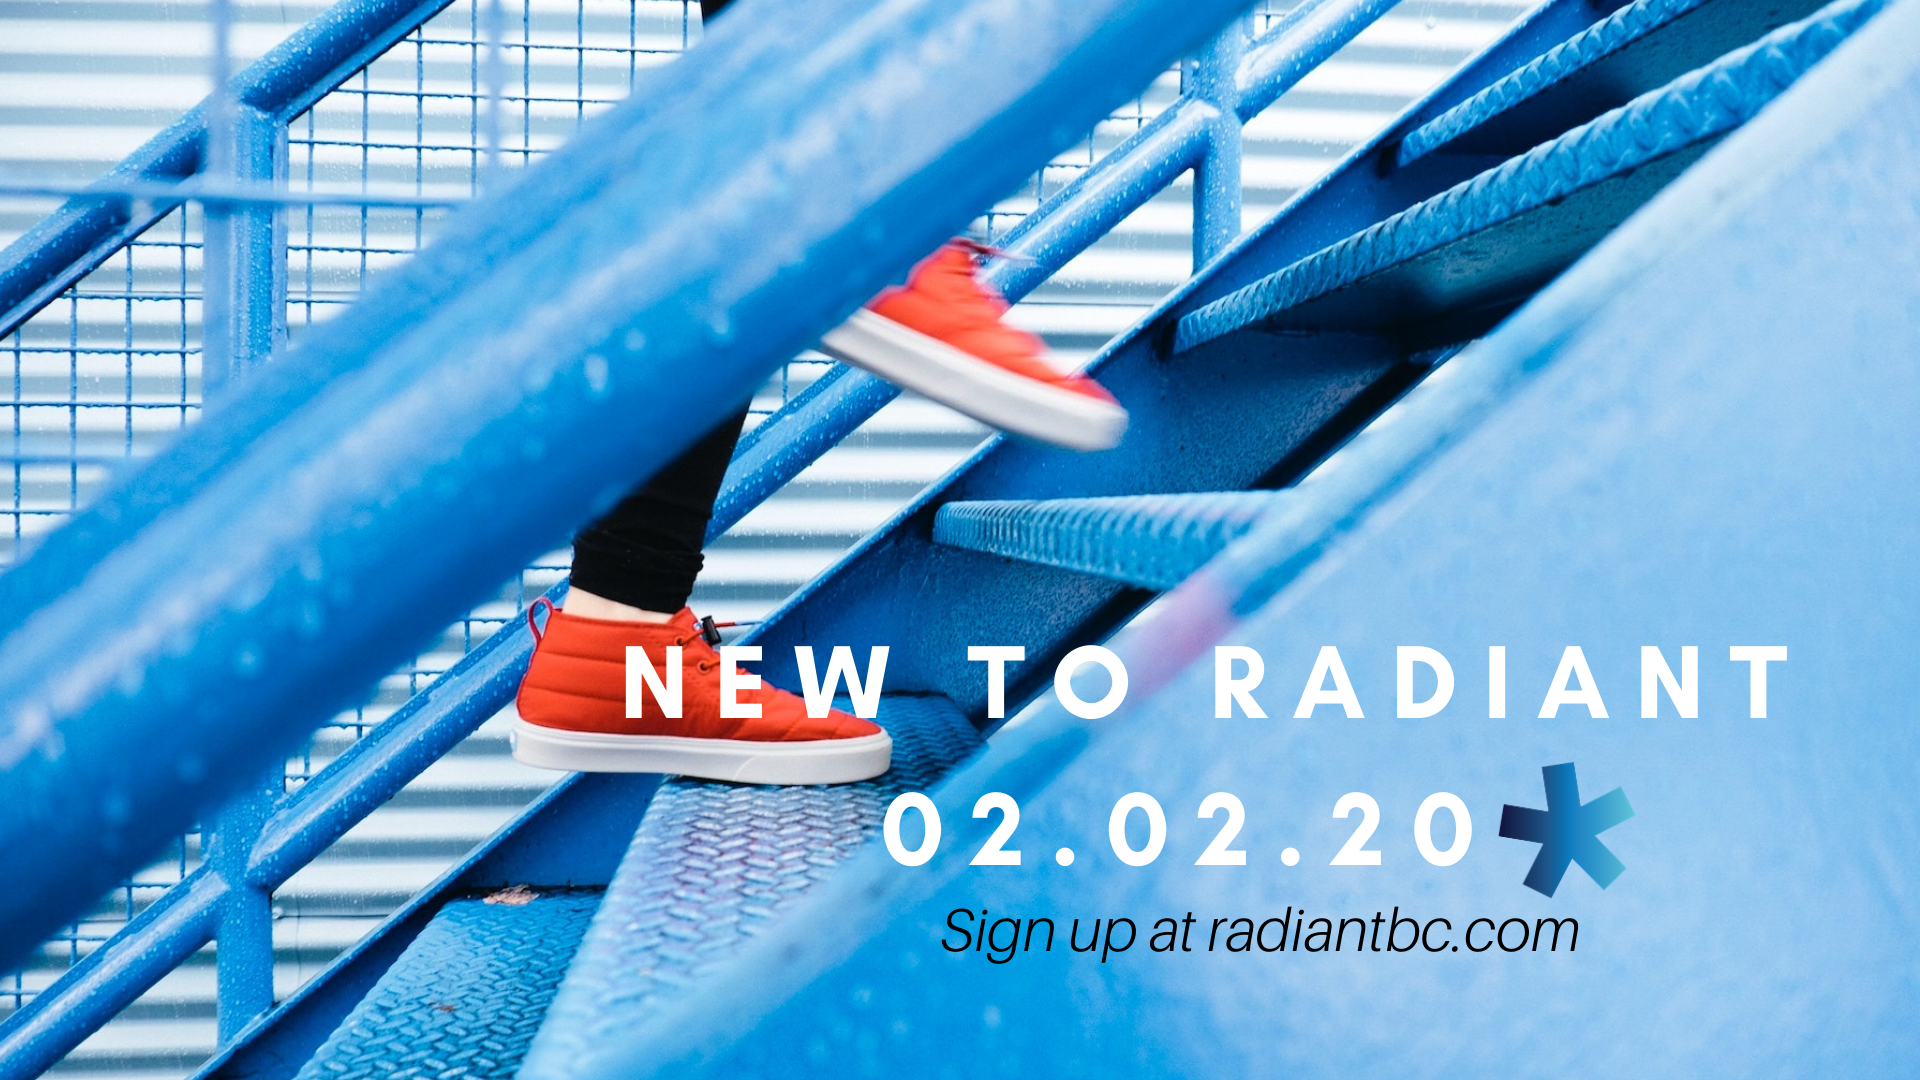 New to Radiant – February 2020